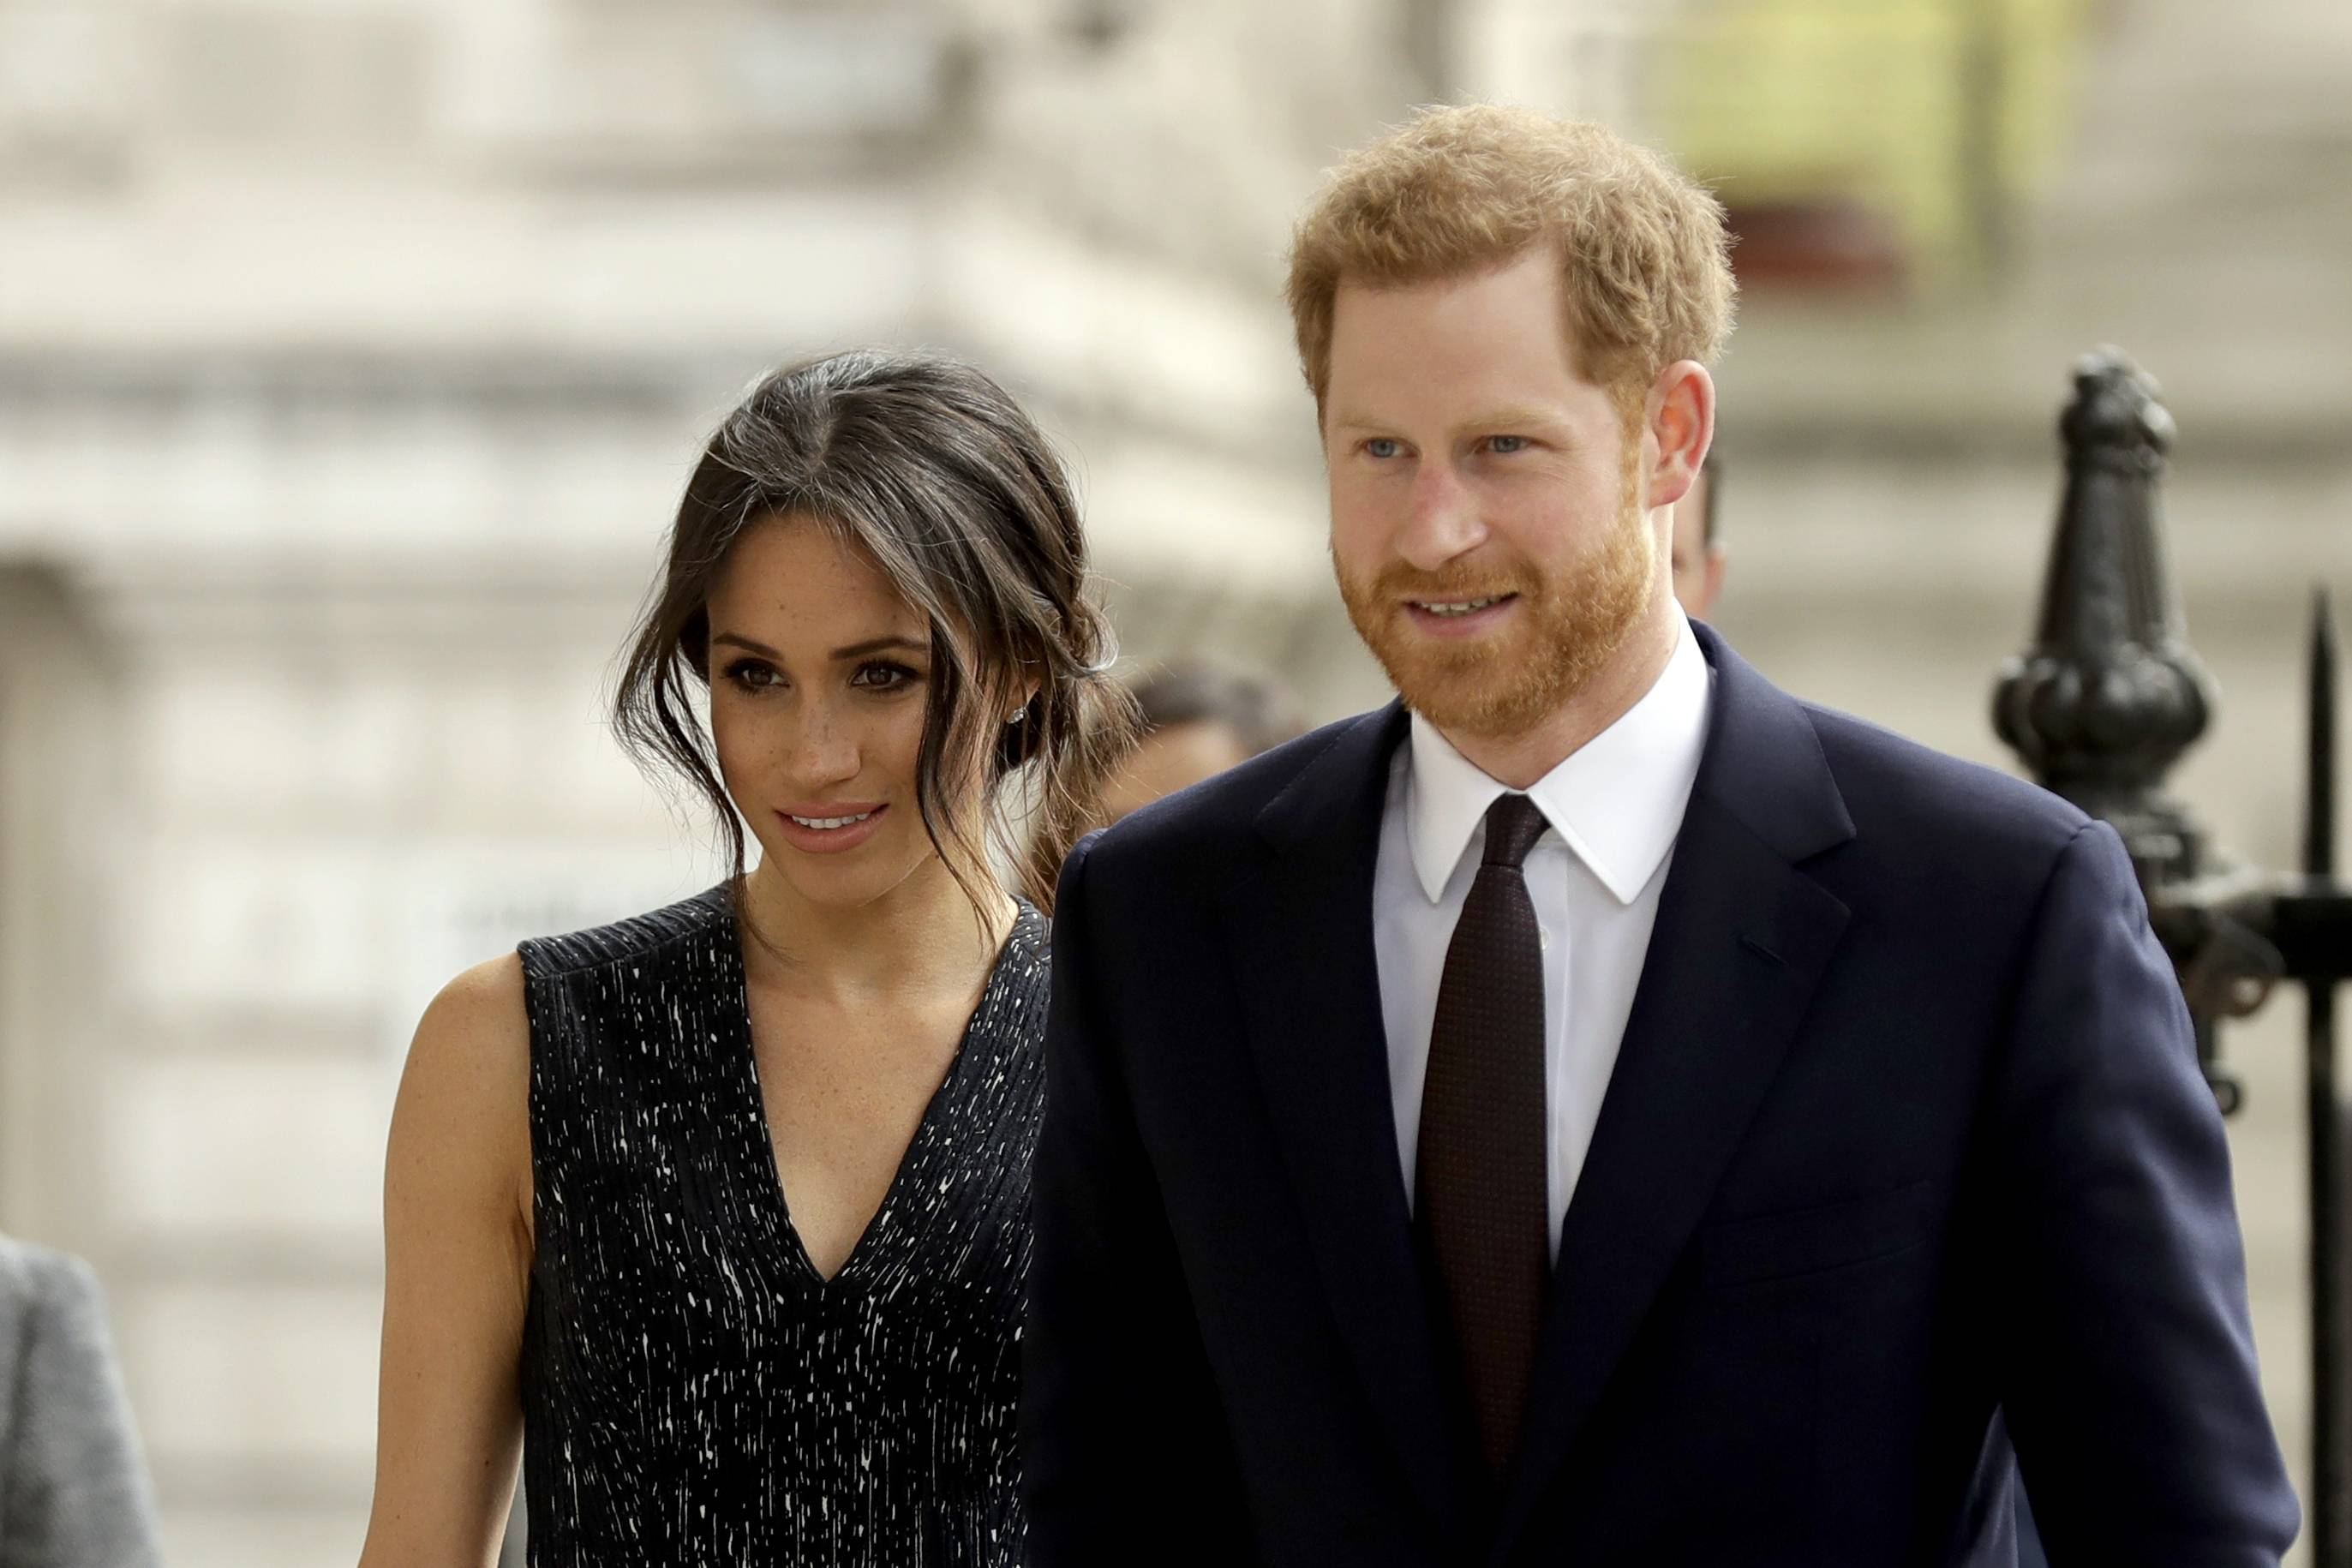 Britain's Prince Harry and his fiancee Meghan Markle. With just one day to go before the royal event of the year, palace officials have said that Prince Charles, the heir to the British throne, will now walk Markle down the aisle.